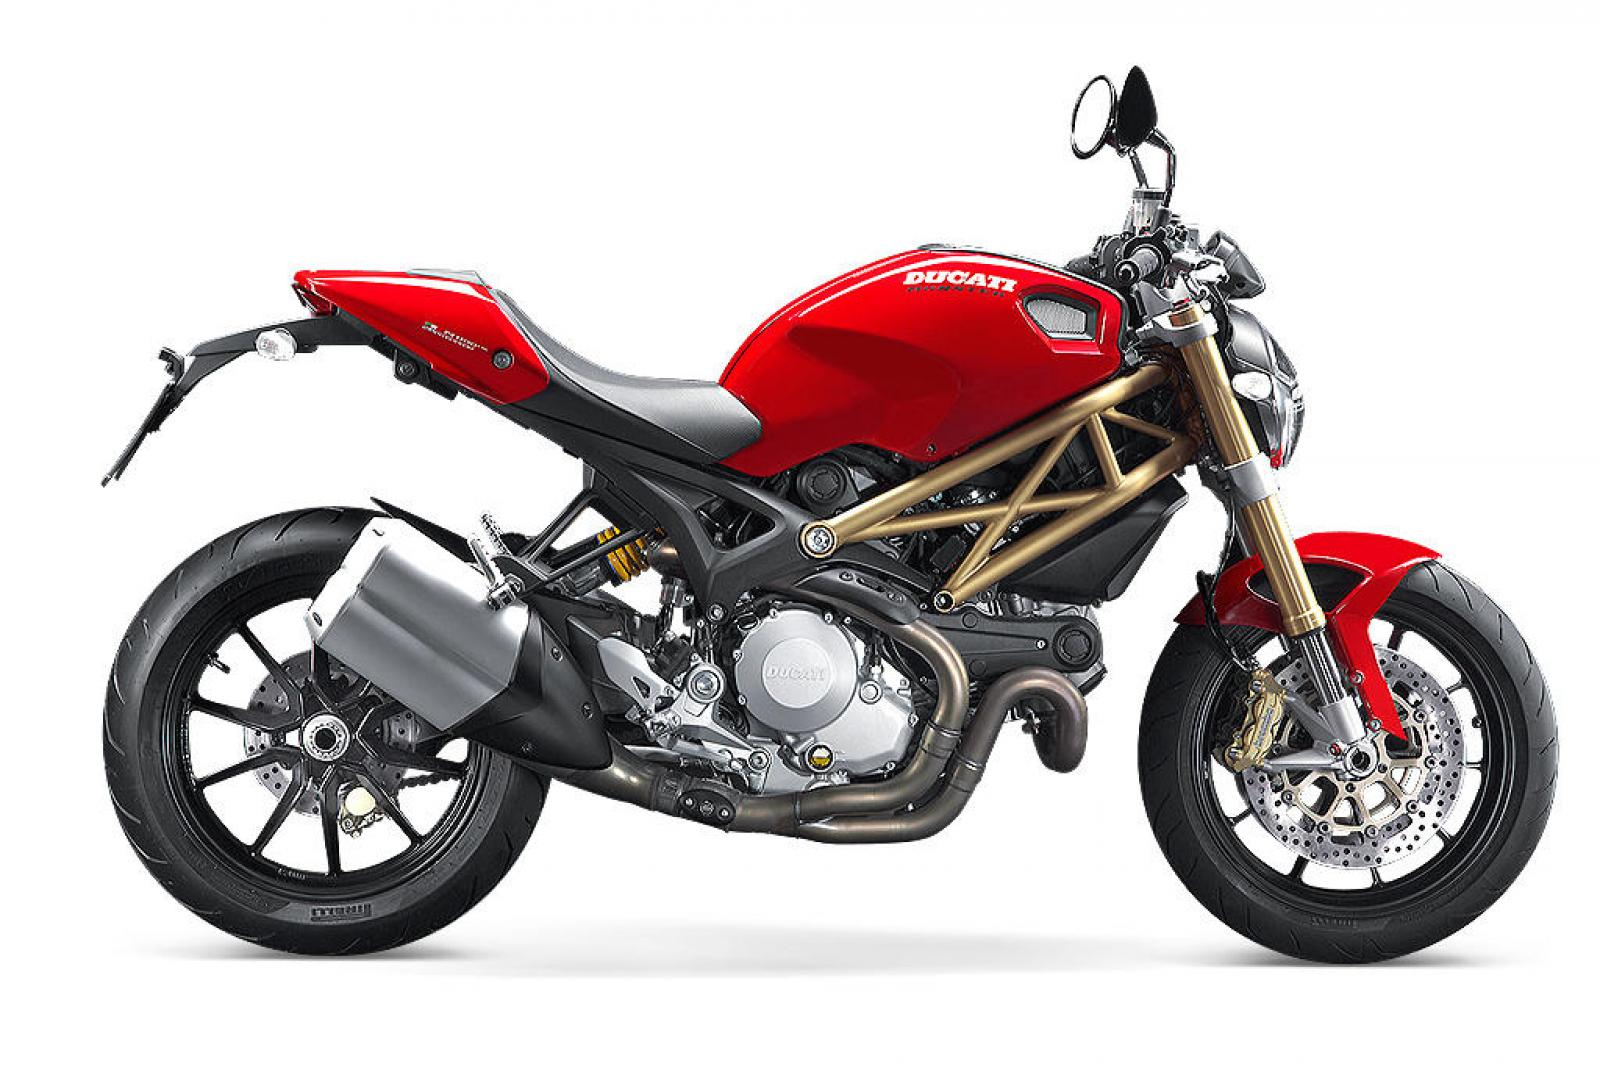 ducati ducati monster 1100 evo 20th anniversary moto zombdrive com. Black Bedroom Furniture Sets. Home Design Ideas